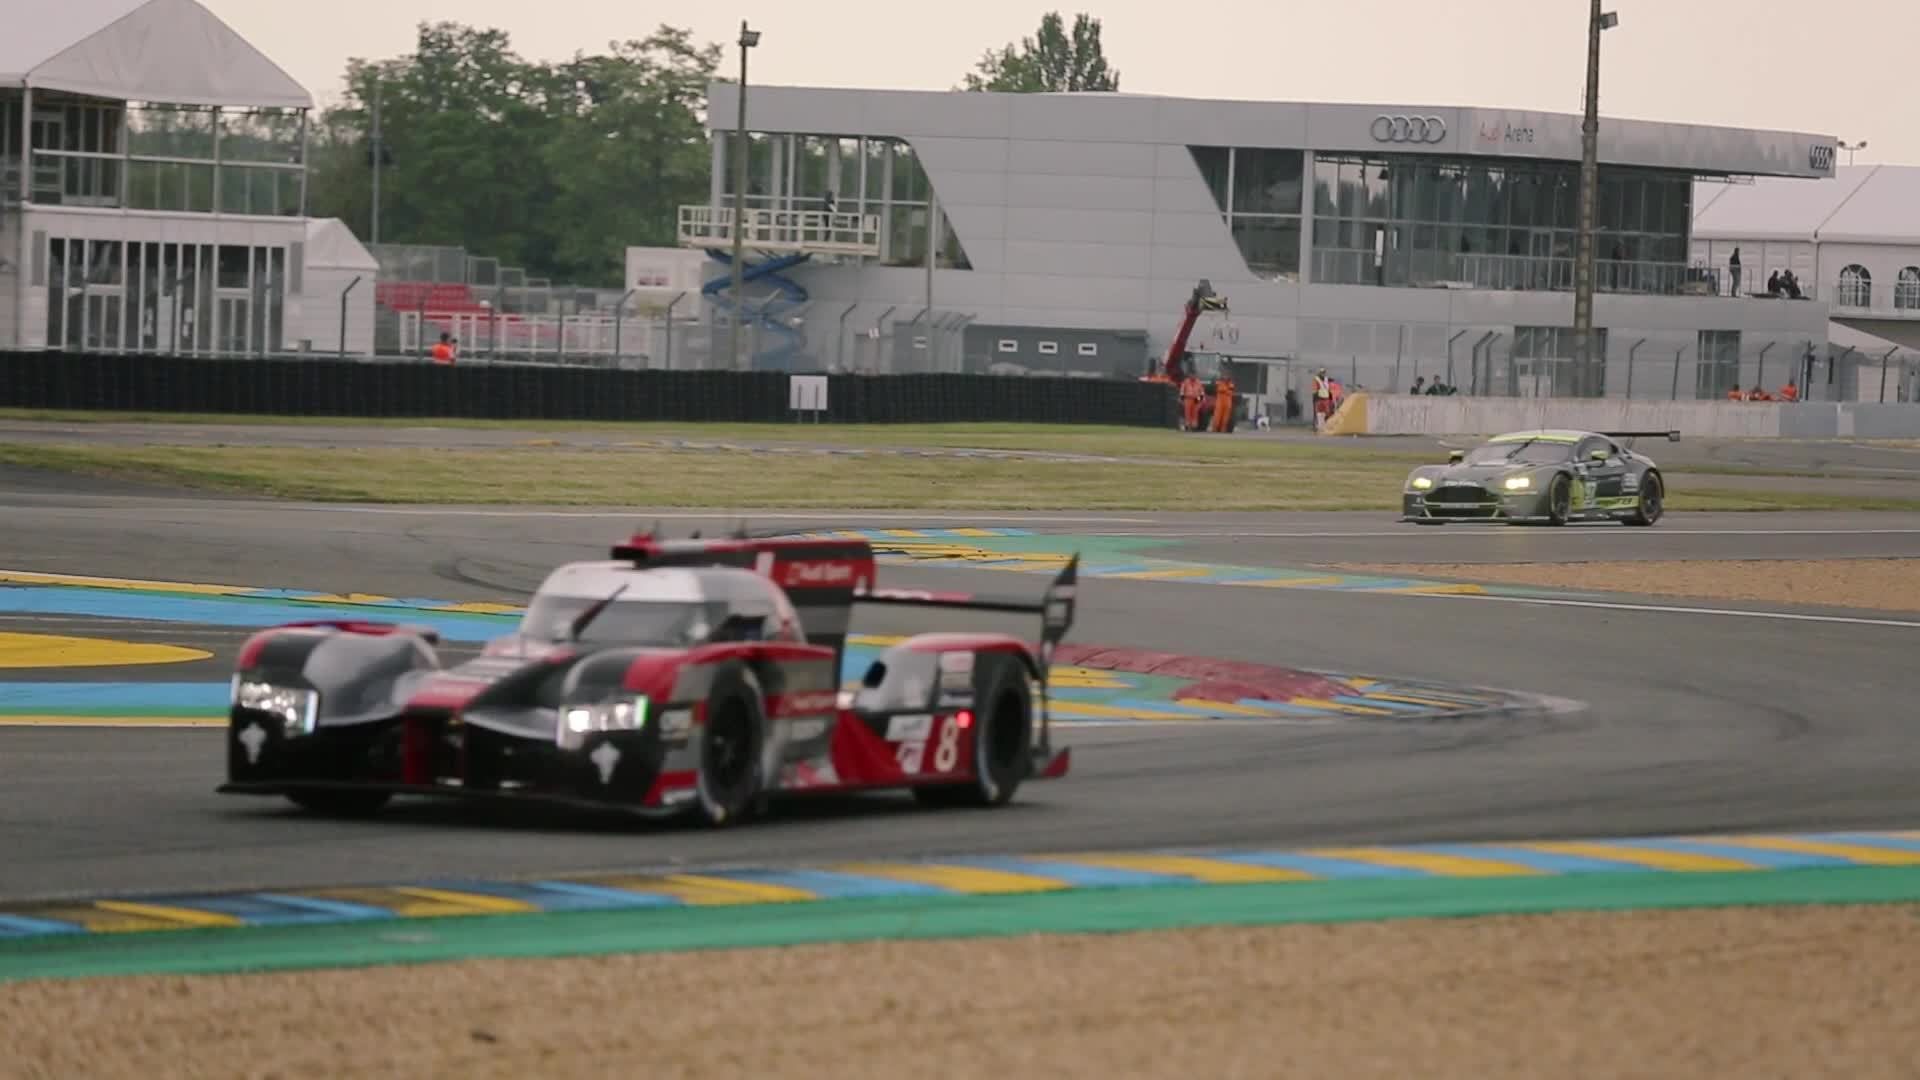 Valuable test kilometers for Audi at Le Mans